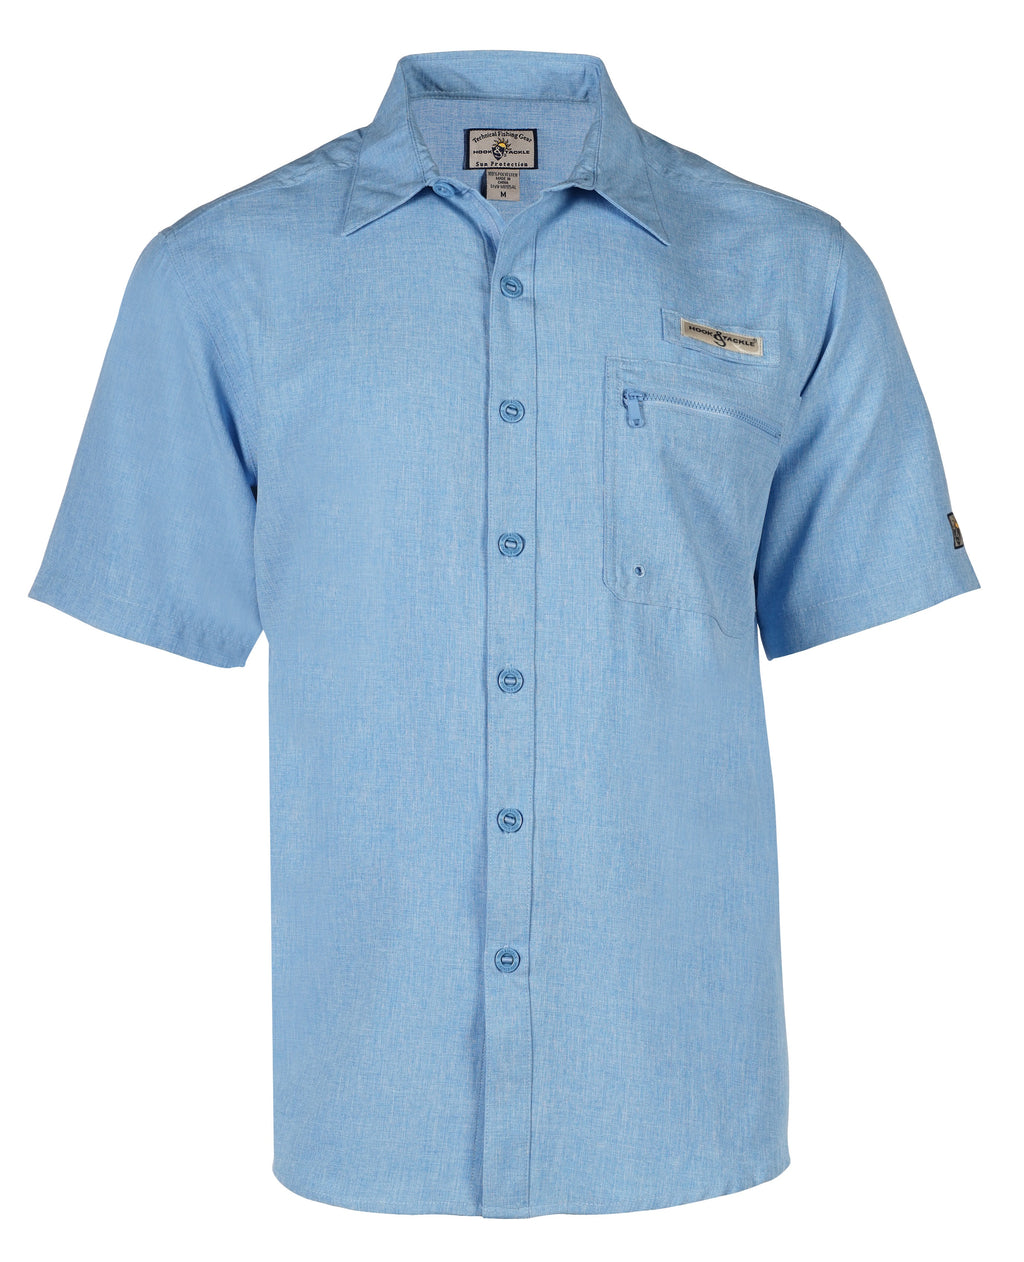 Hook & Tackle Tamarindo Short Sleeve Fishing Shirt, Blue